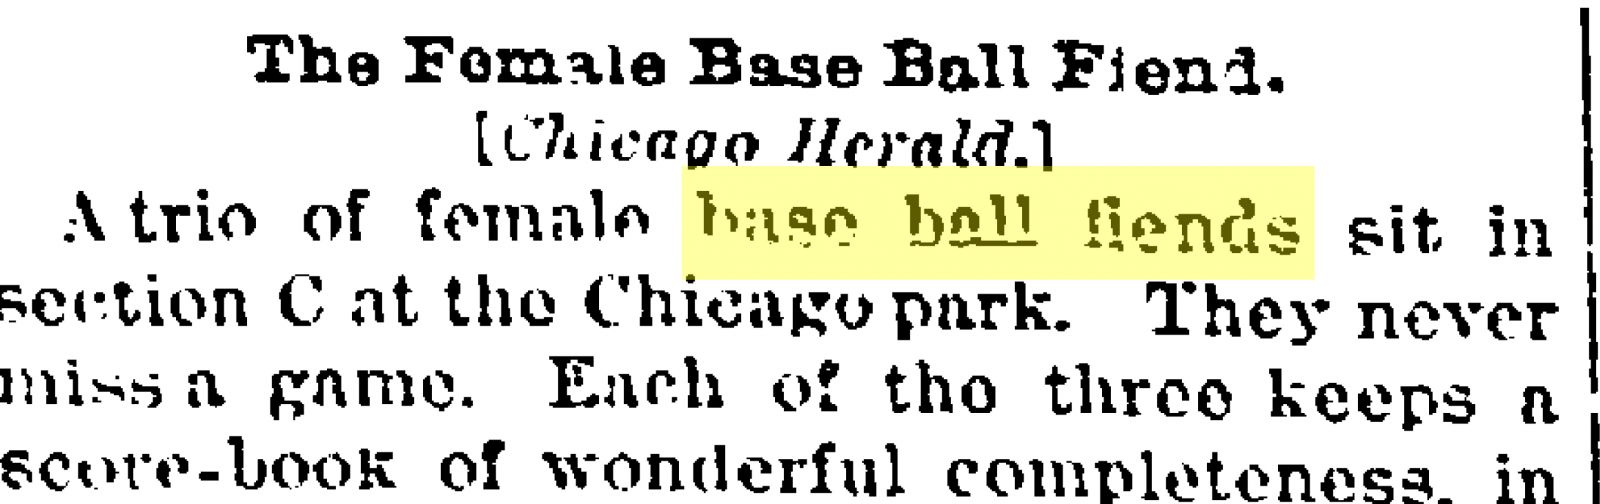 Image of Chicago Herald article published in the June 21, 1887, Kansas City Times with headline The Female Base Ball Fiend